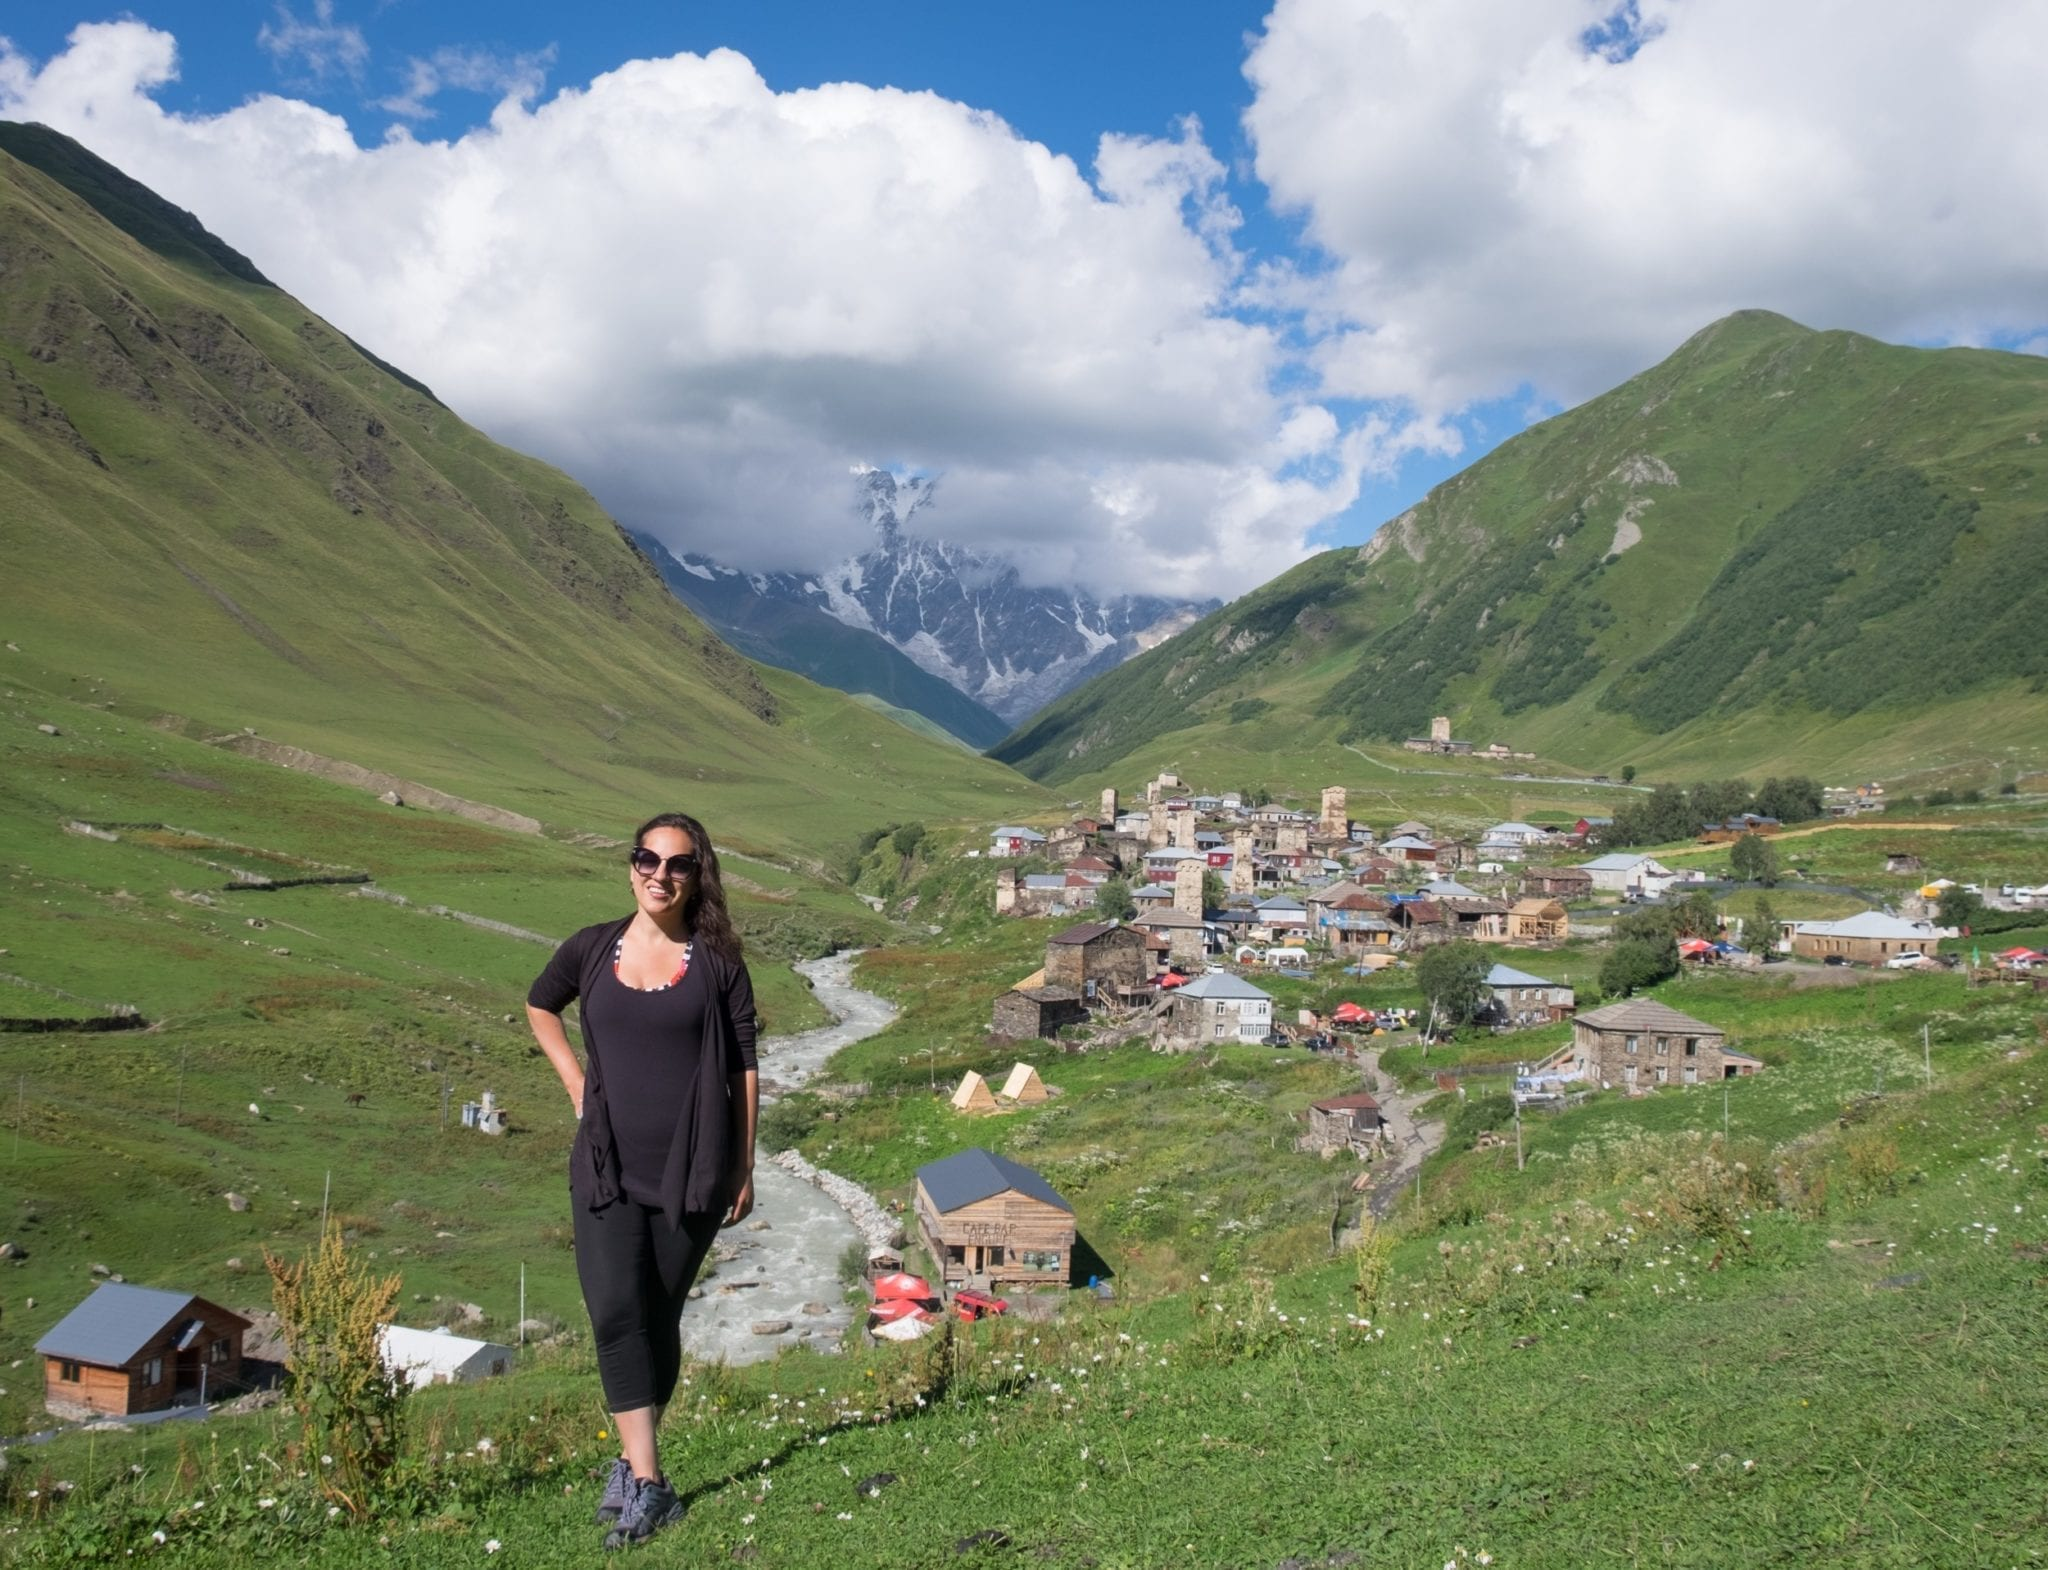 Kate stands on a grassy hill in front of the village of Ushguli in Georgia, with its stone towers. Behind the village is a mountain partially obscured by clouds.